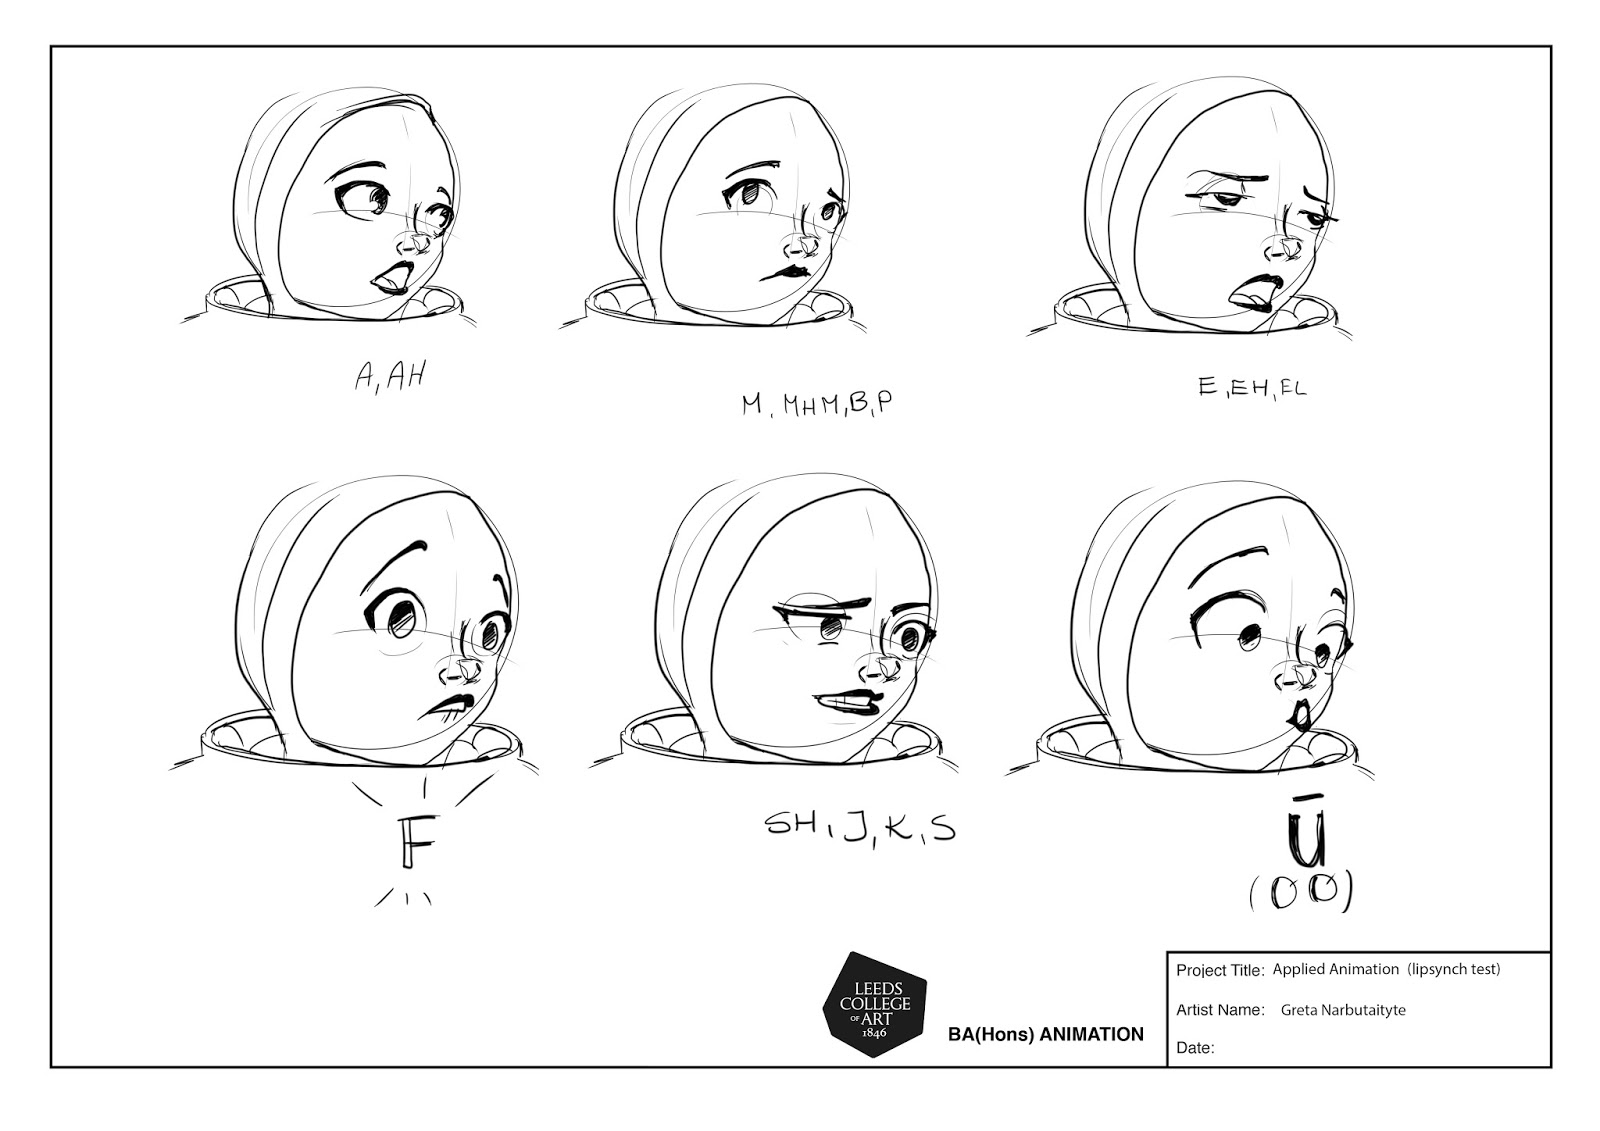 Studio Practice: Applied Animation: Lip Synching